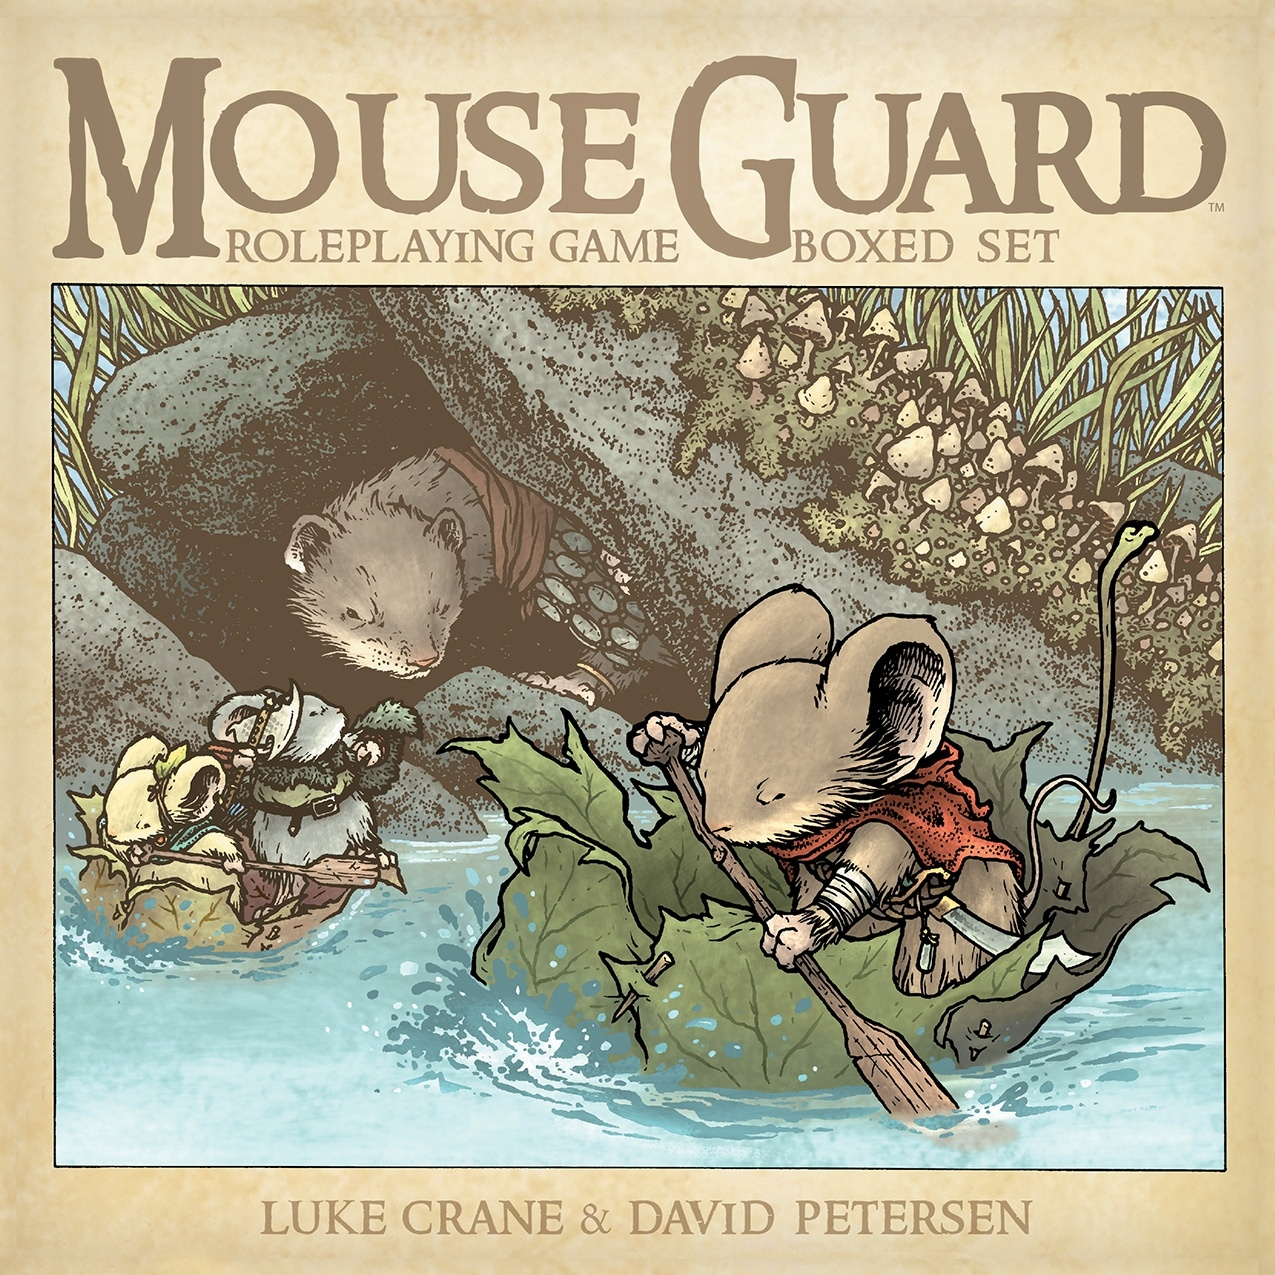 Mouse Guard Roleplaying Game Boxed Set (Image: David Petersen/Boom Studios/Archaia Entertainment)